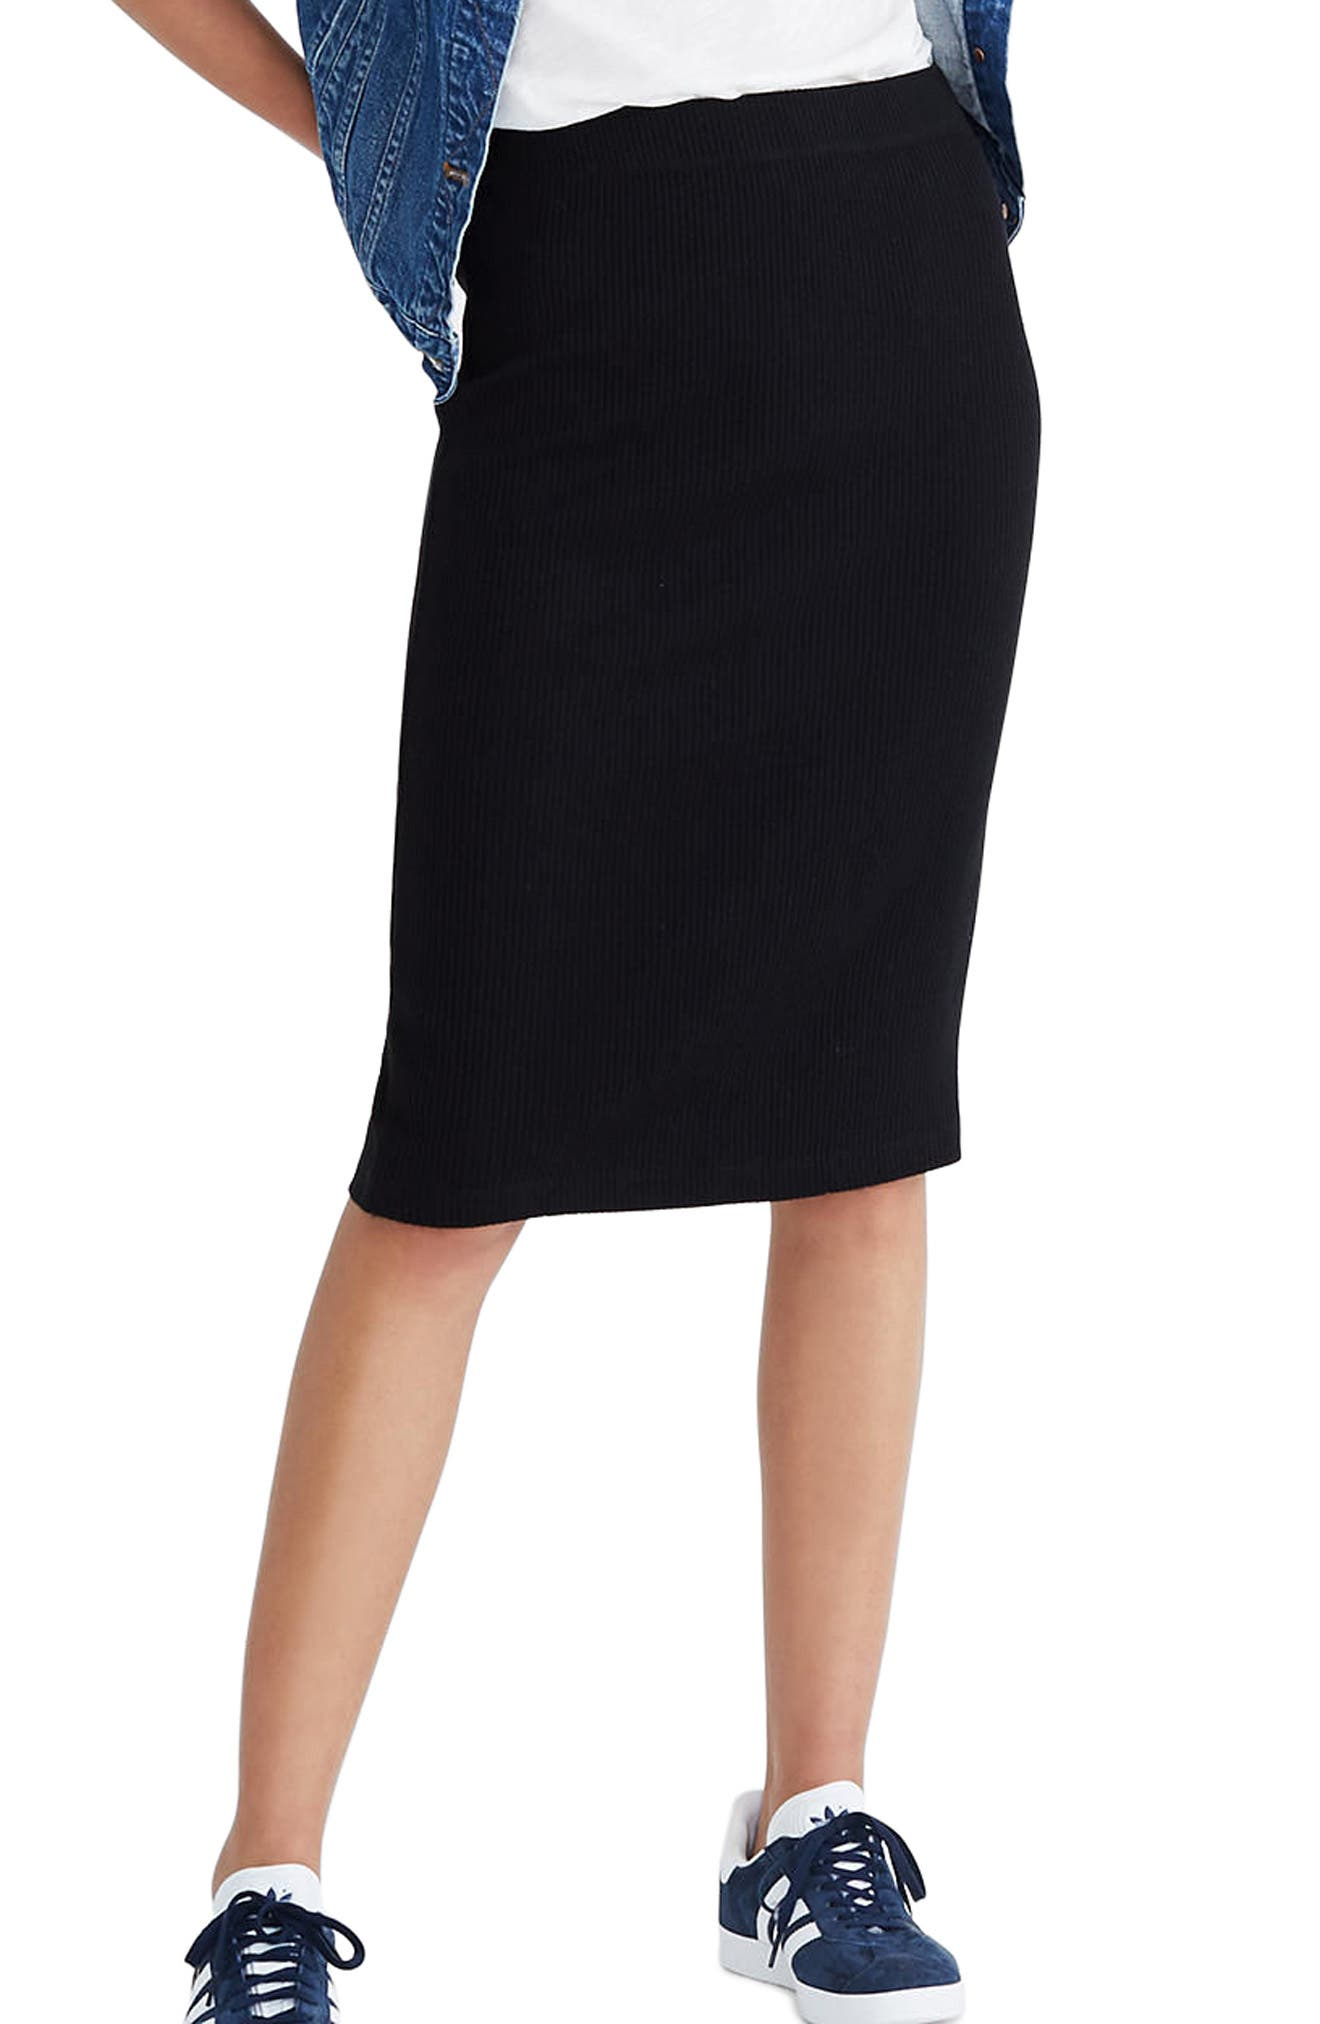 Ribbed Pencil Skirt,                             Main thumbnail 1, color,                             001